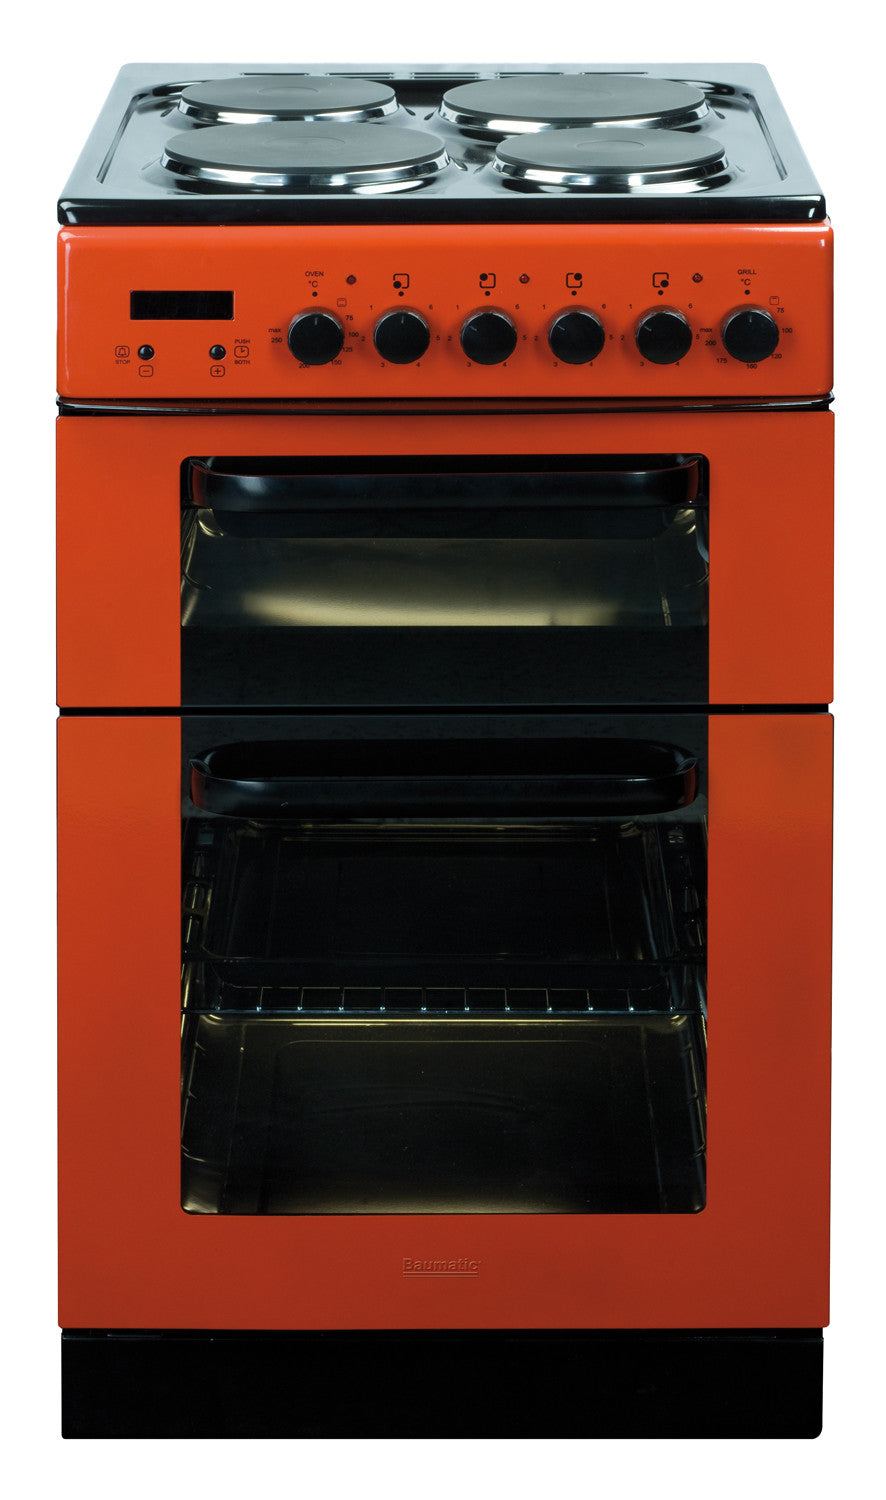 Baumatic bce520r dual cavity 50cm electric cooker red for 50cm deep kitchen units